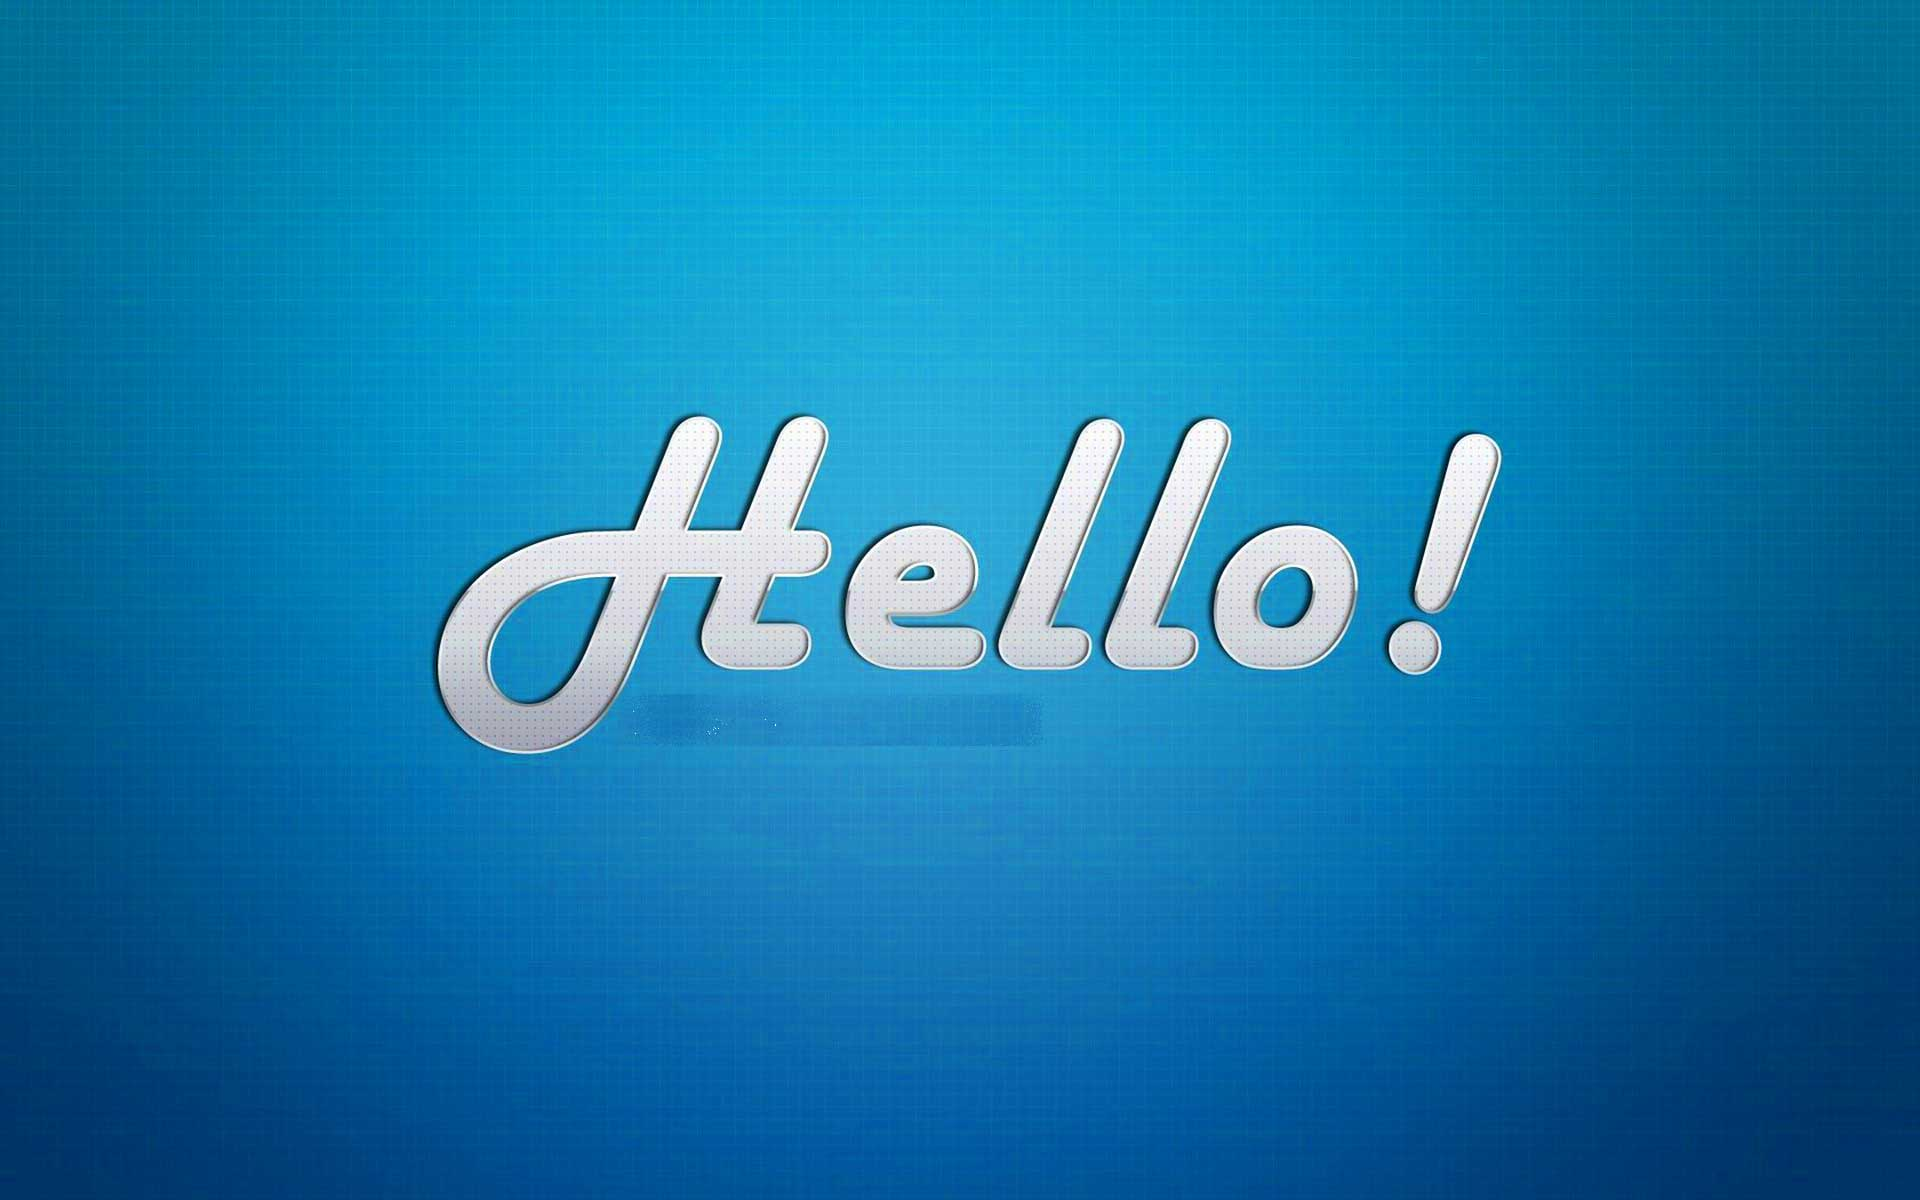 HI/Hello Good Morning Images Wallpaper Pics Pictures Photo HD Download For Whatsaap